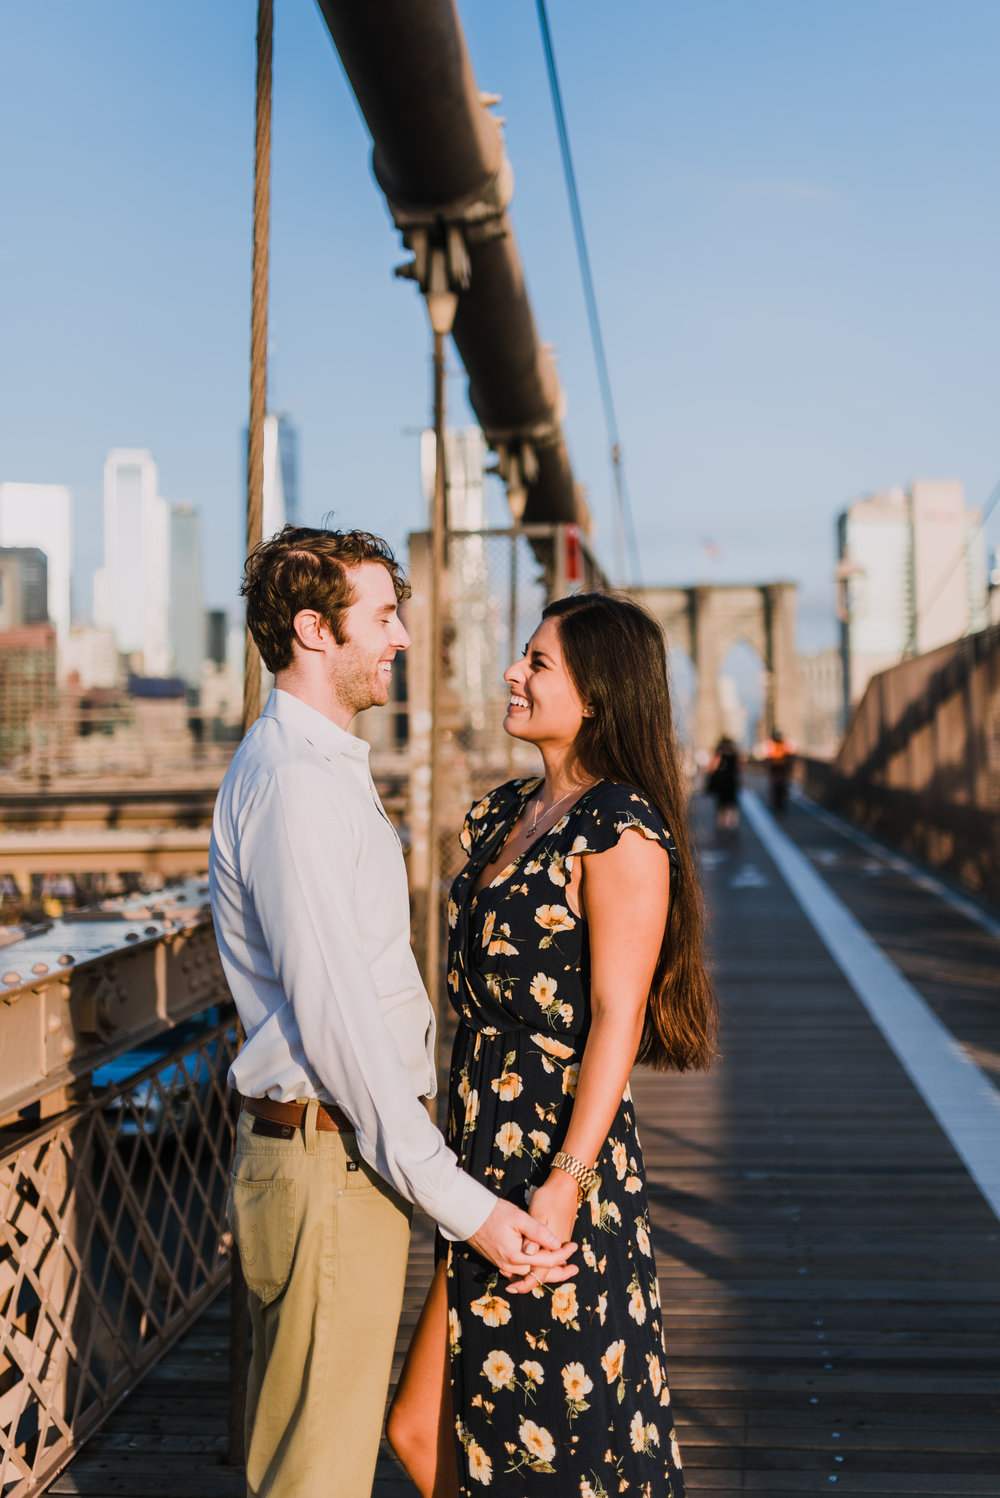 brooklyn bridge engagement shoot, couple shoot nyc, nyc wedding photographer, destination wedding photographer, documentary wedding photographer in nyc (18).jpg